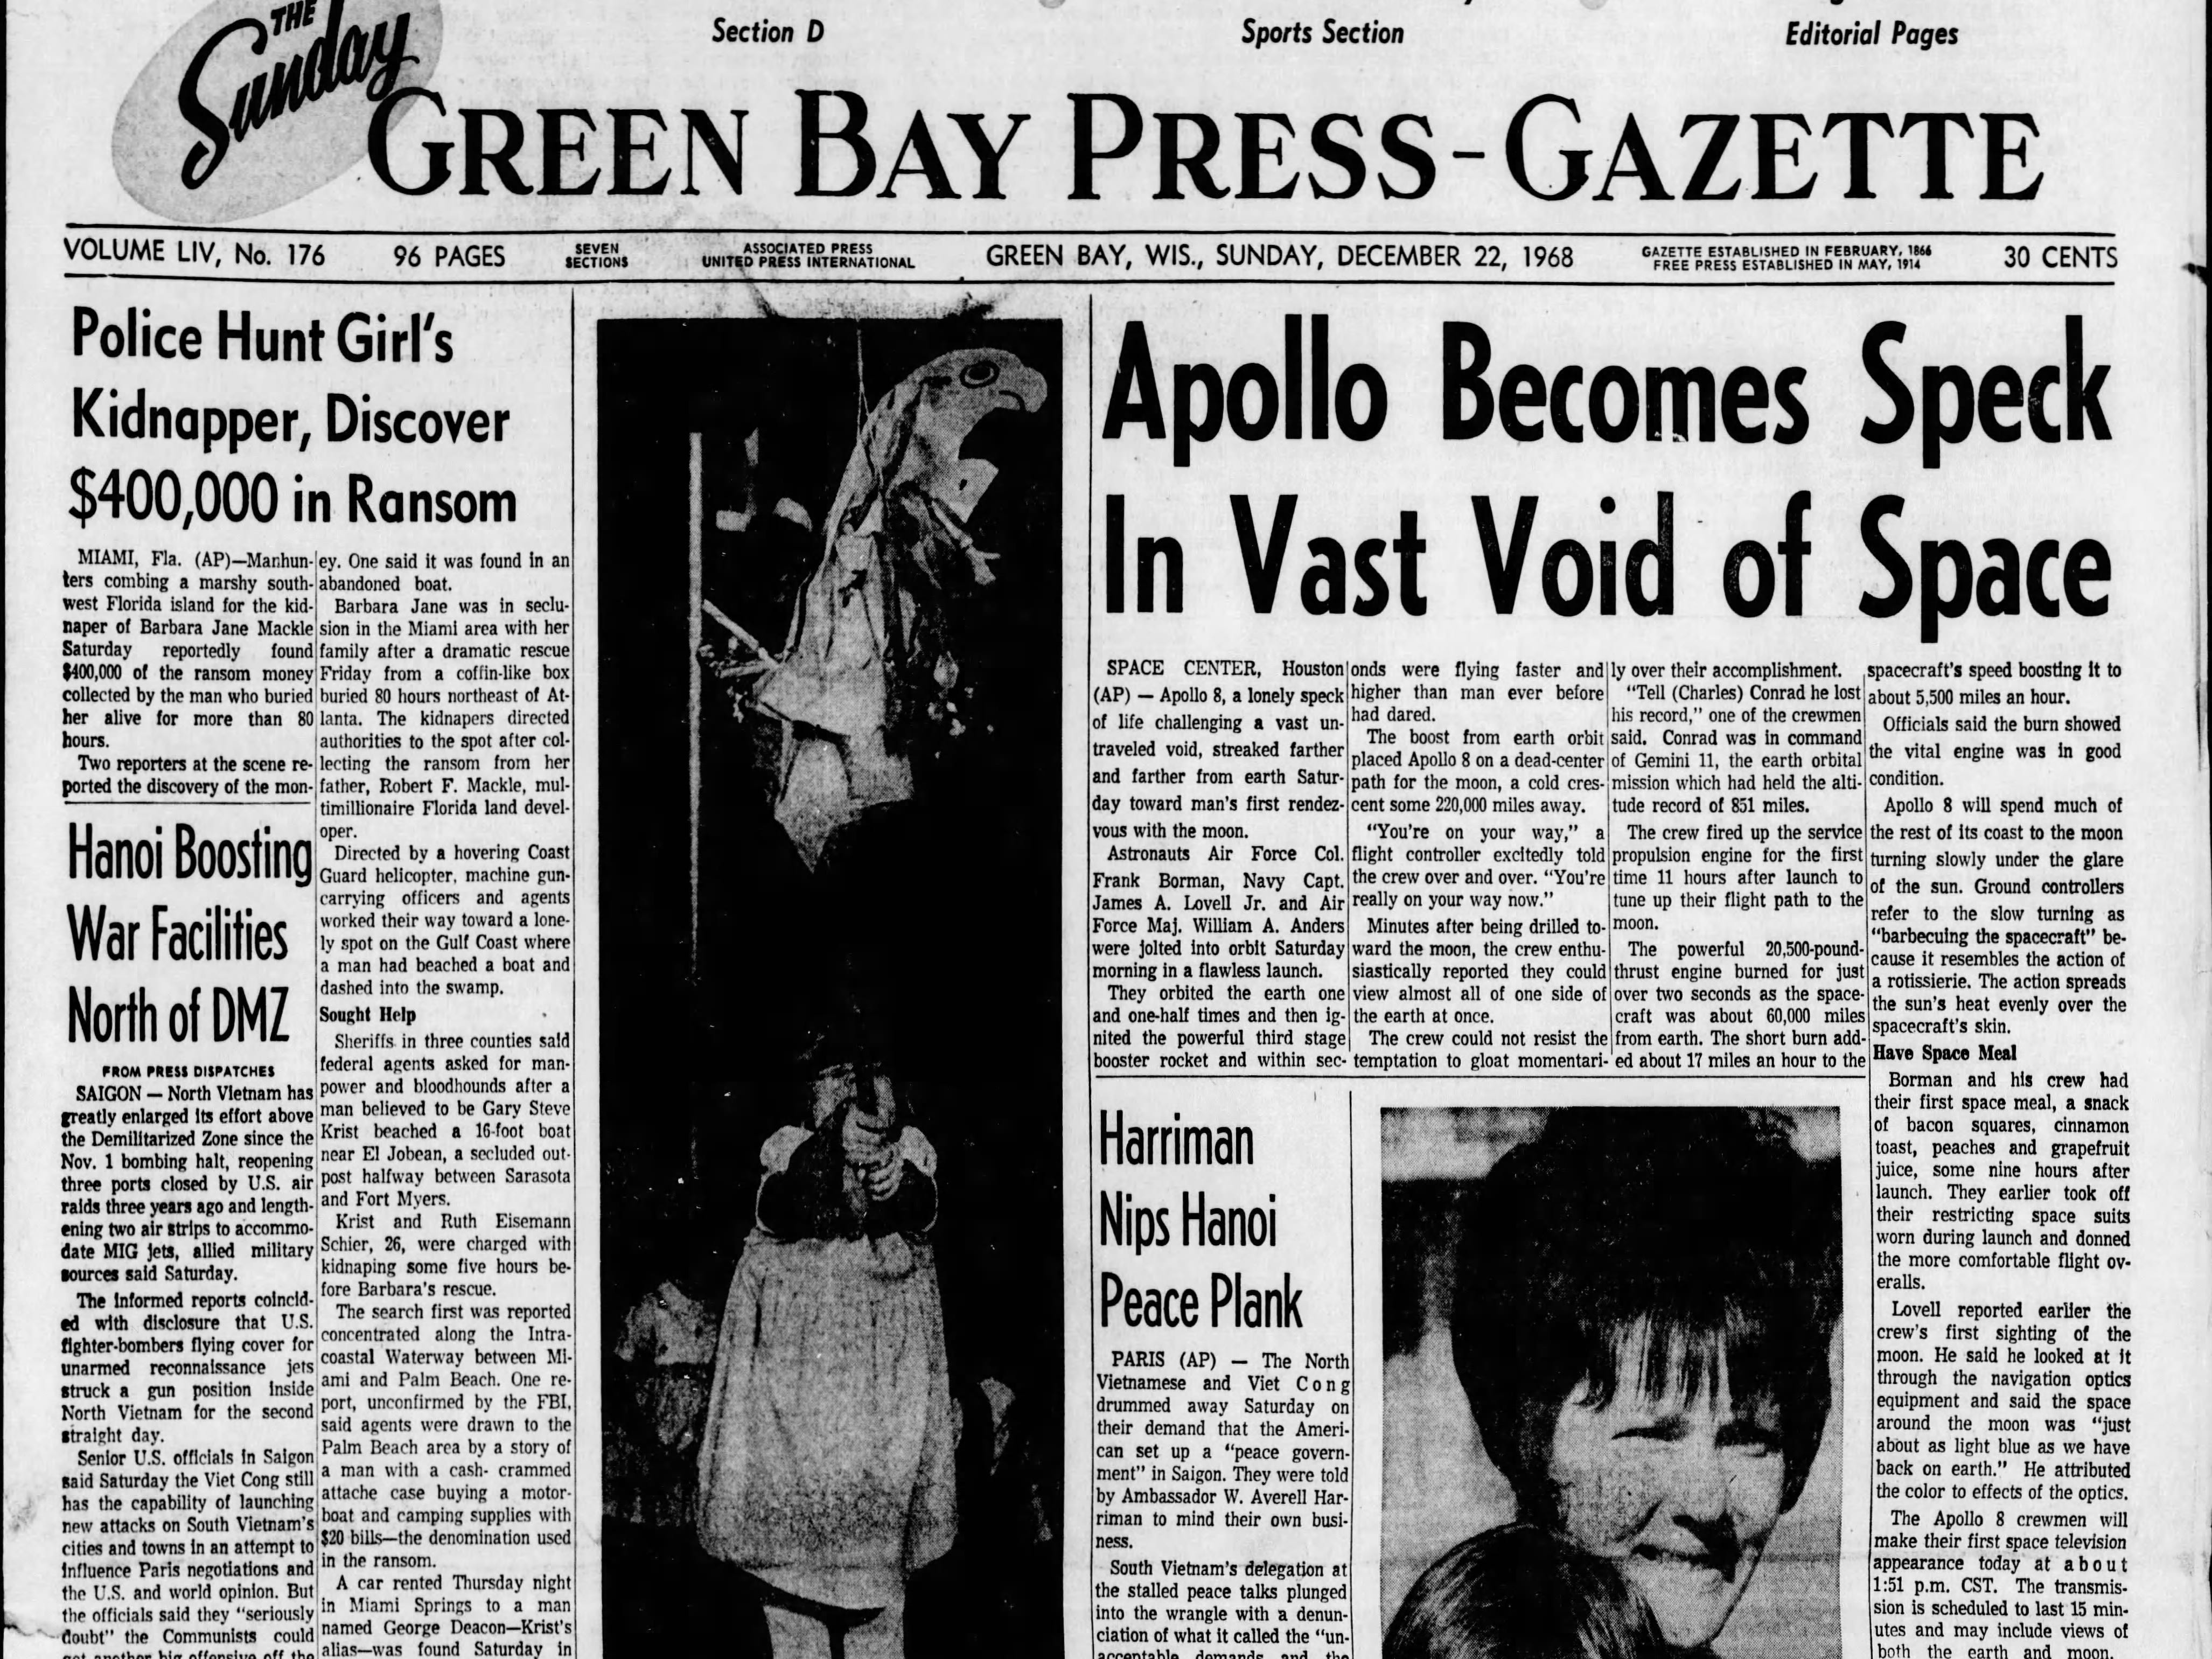 Today in History: Dec. 22, 1968